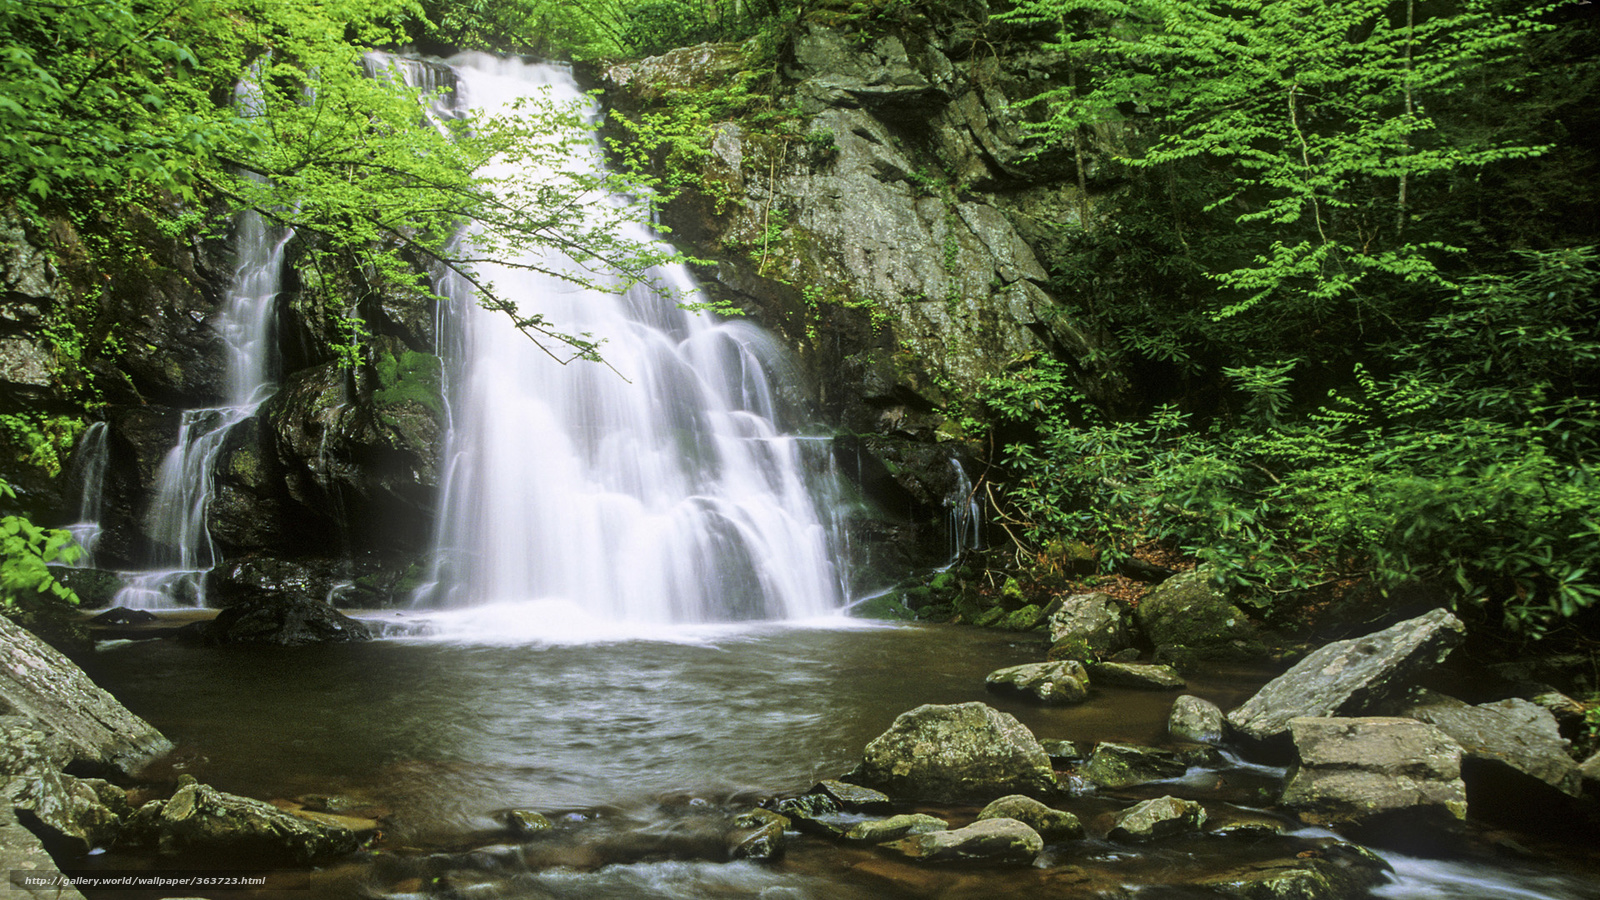 Download wallpaper waterfall, forest, greens free desktop